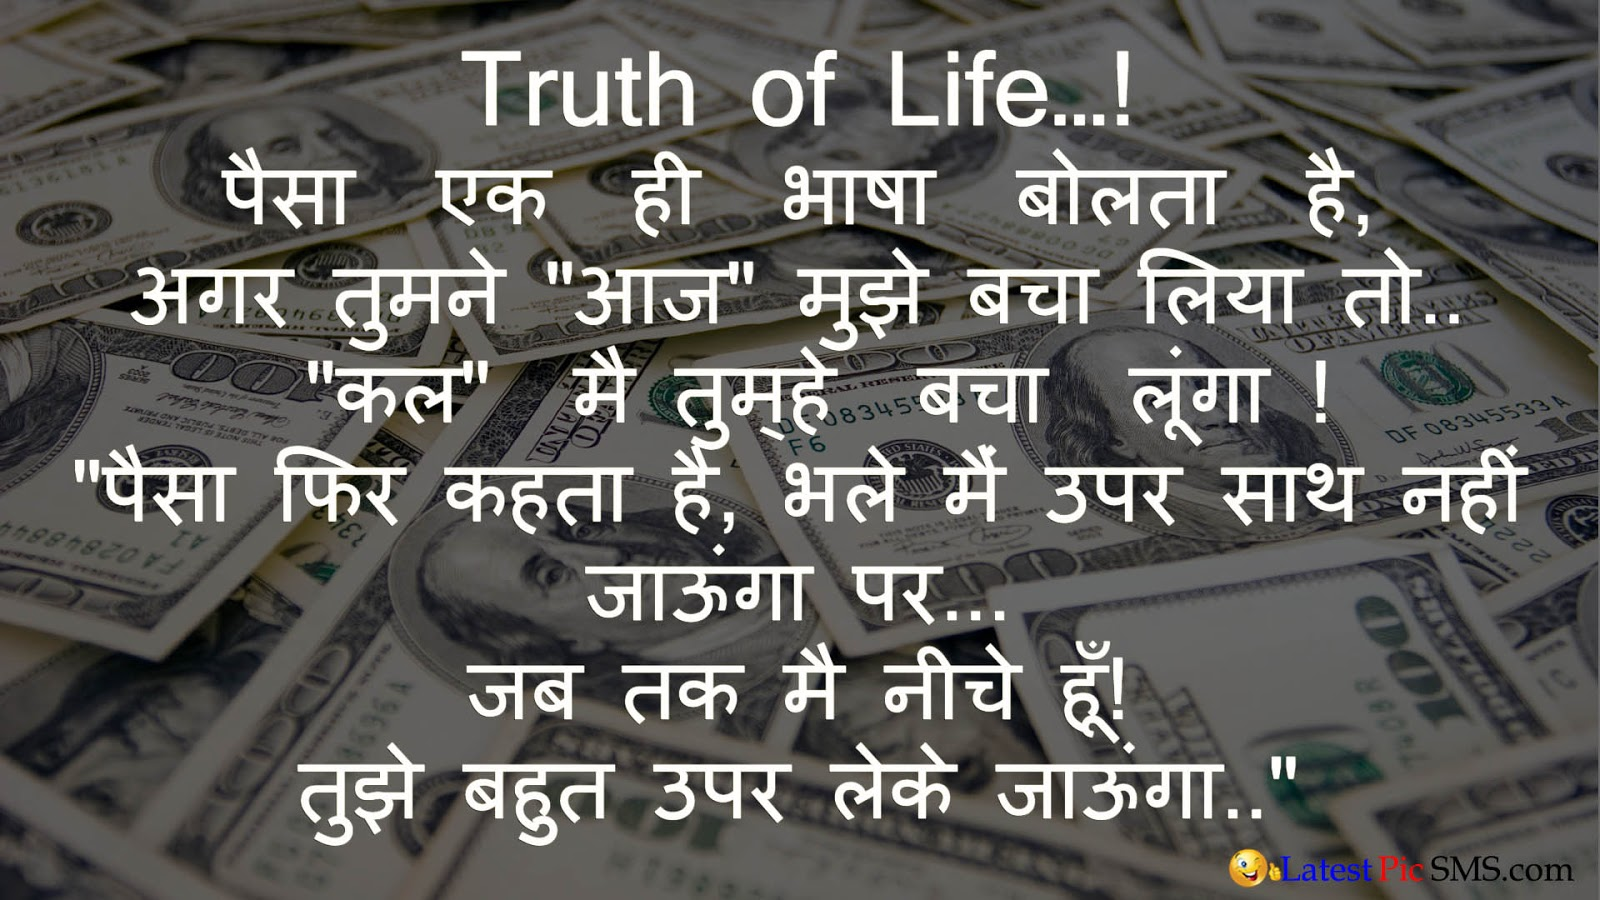 Truth of Life in Money Dollar or Rupees